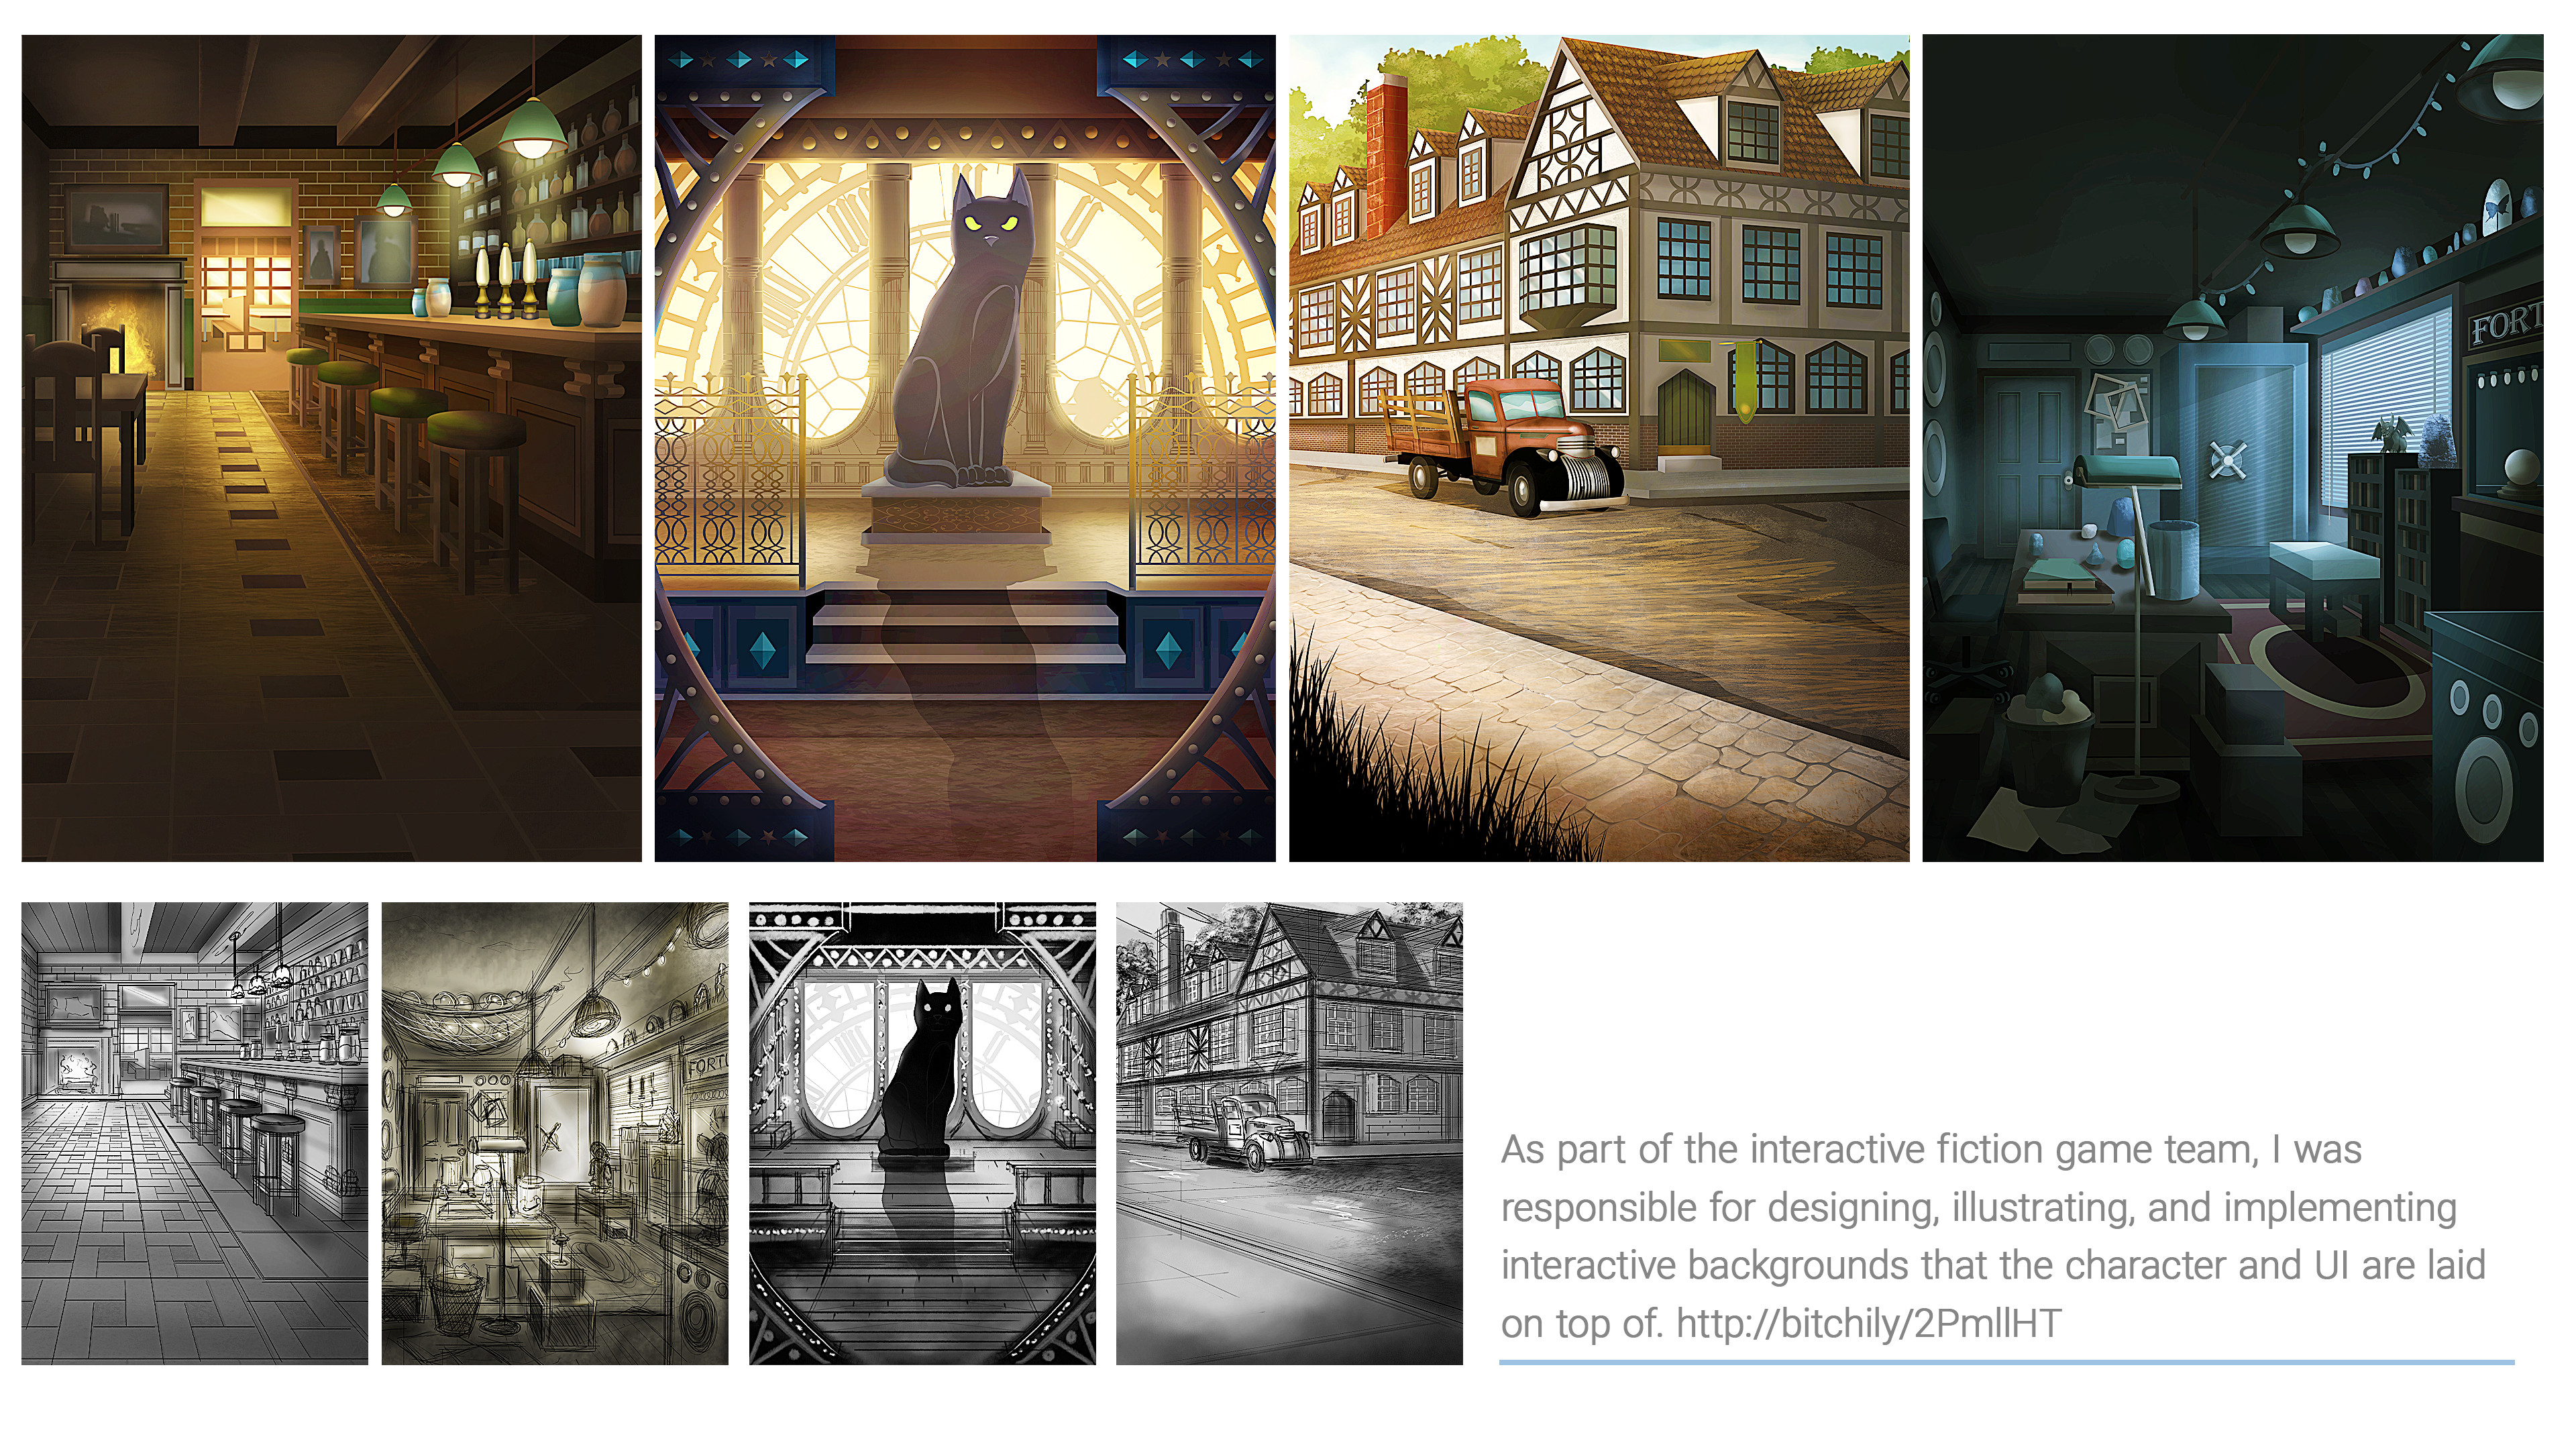 Interactive fiction background illustrations.